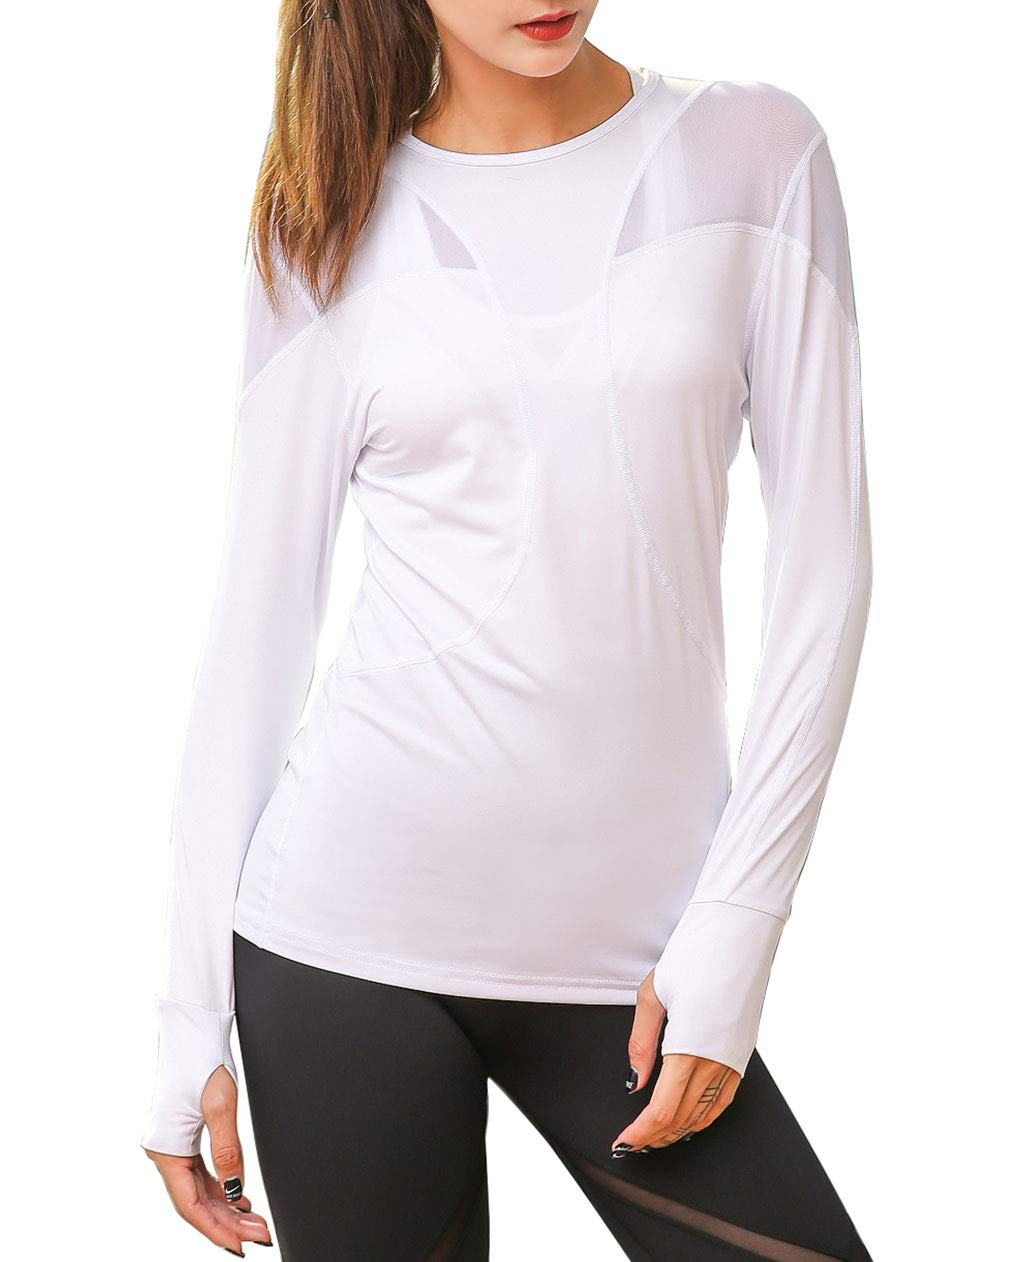 UDIY Women's Long Sleeve Workout Shirts Athletic Running Tops Stretchy Top Solid Color Fashion T Shirt by UDIY